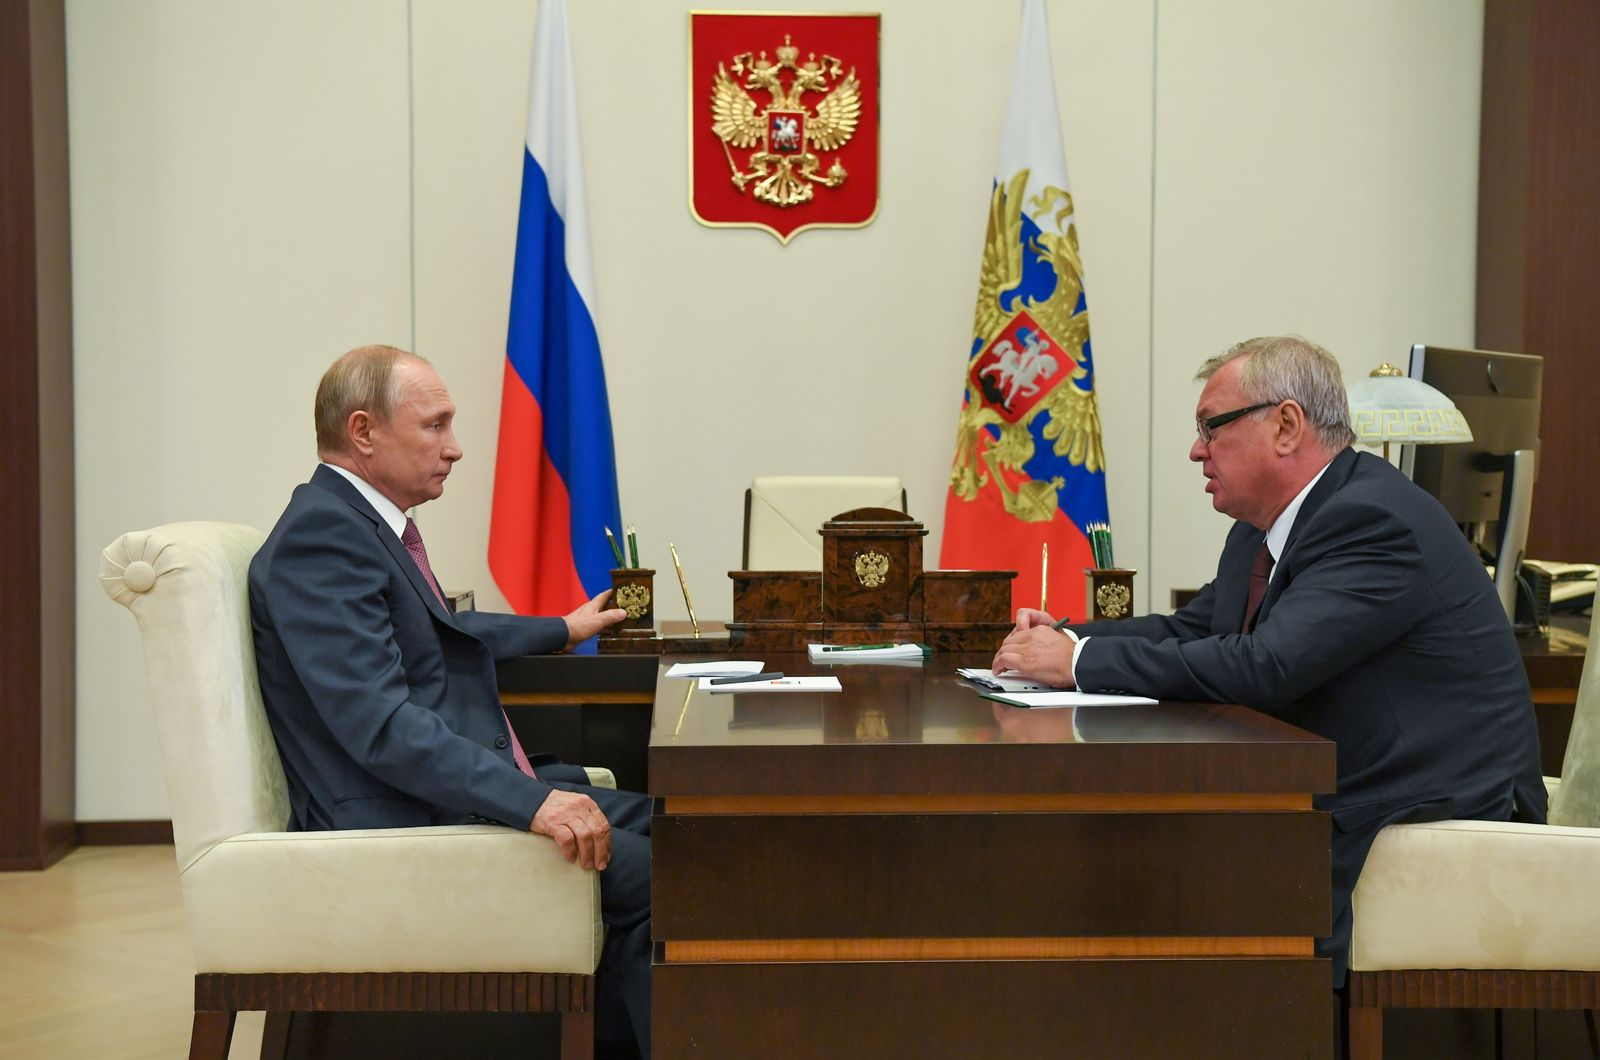 Russian President Putin attends a meeting with CEO of VTB bank Kostin outside Moscow